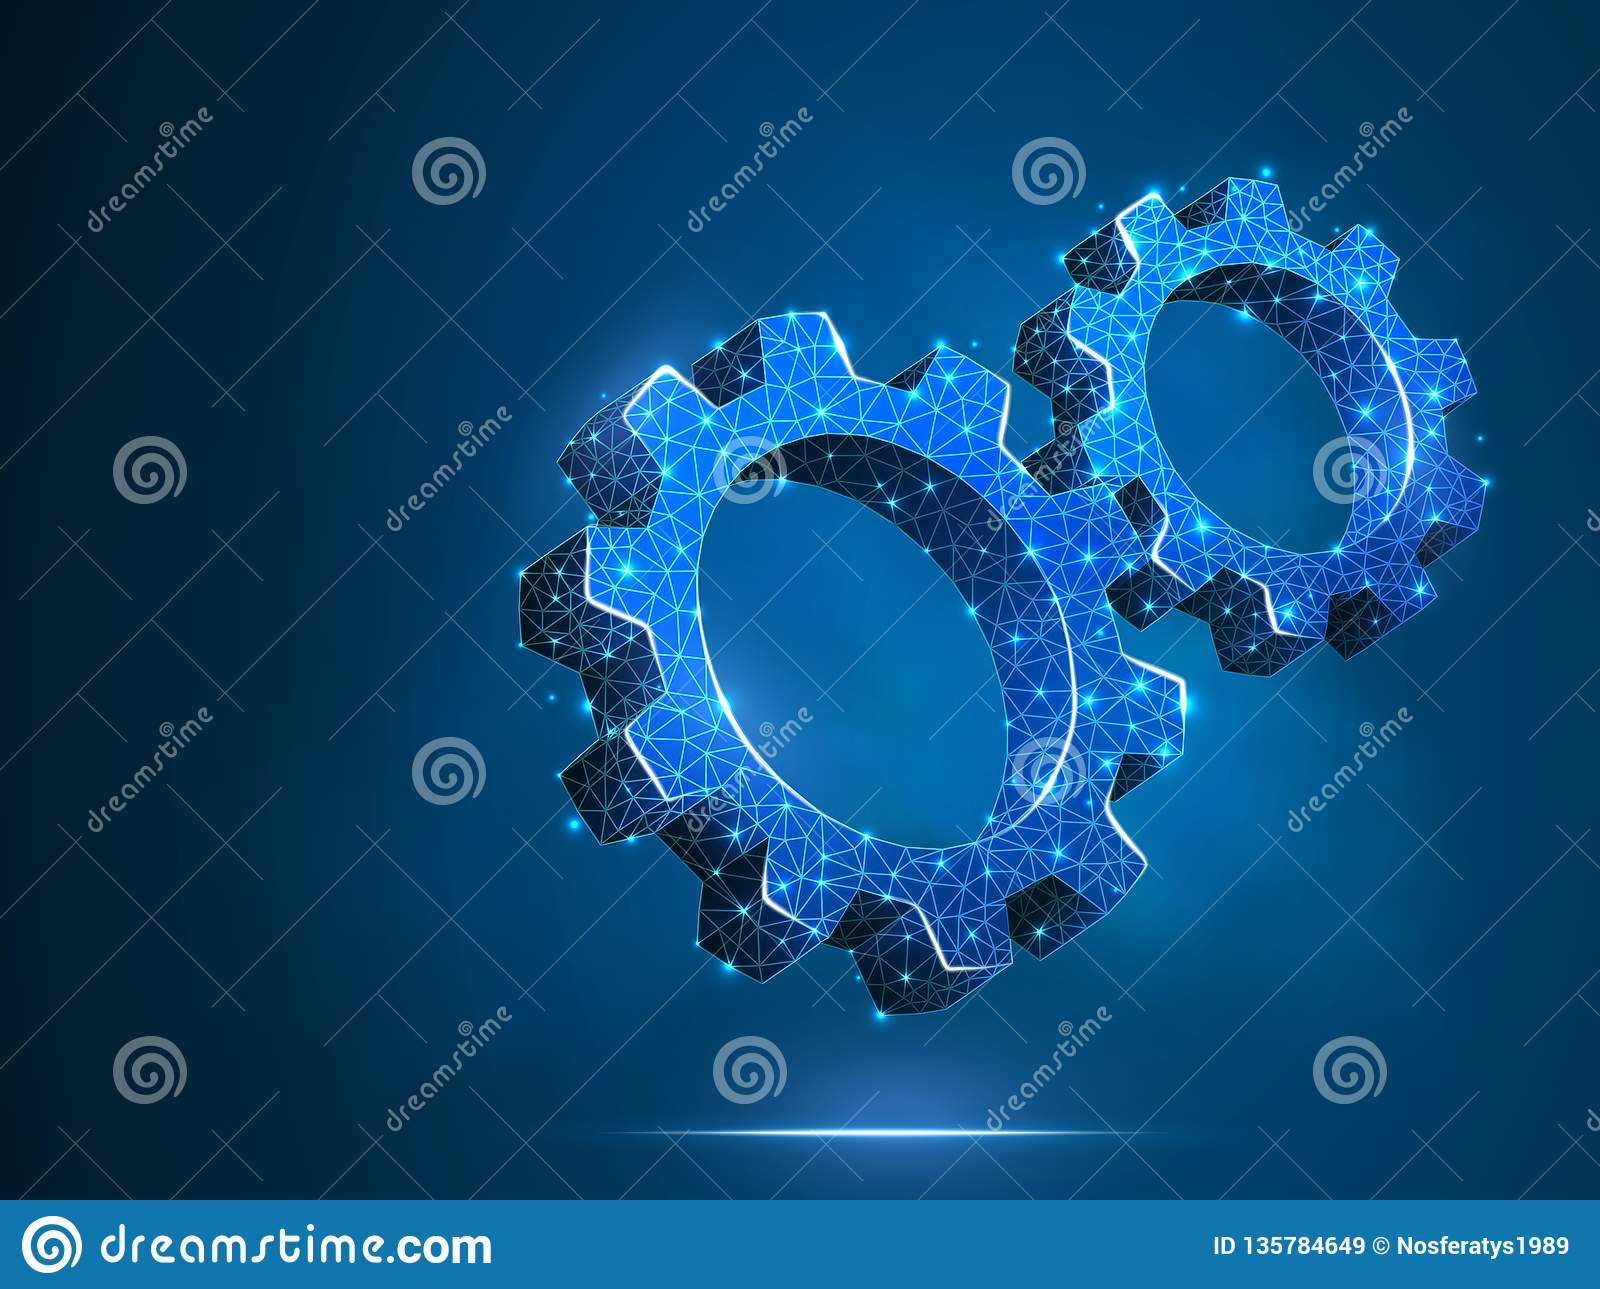 Spinning Gears. Industry, engine work, business solution technology machine engineering symbol Vector low poly polygonal